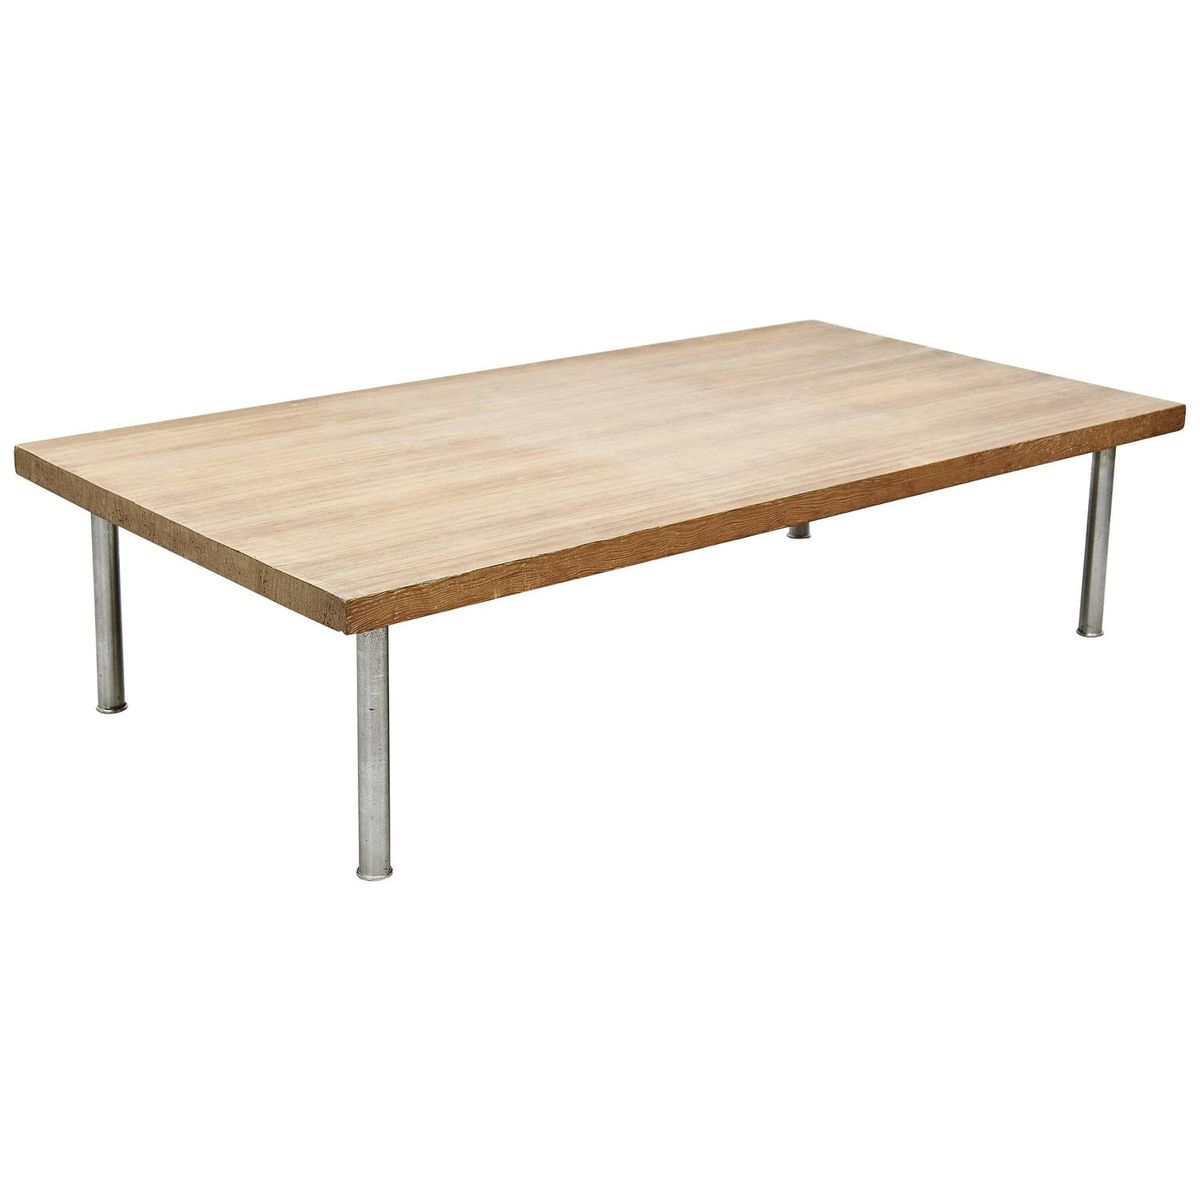 French Wood Coffee Table: French Wood & Steel Coffee Table, 1950s For Sale At Pamono